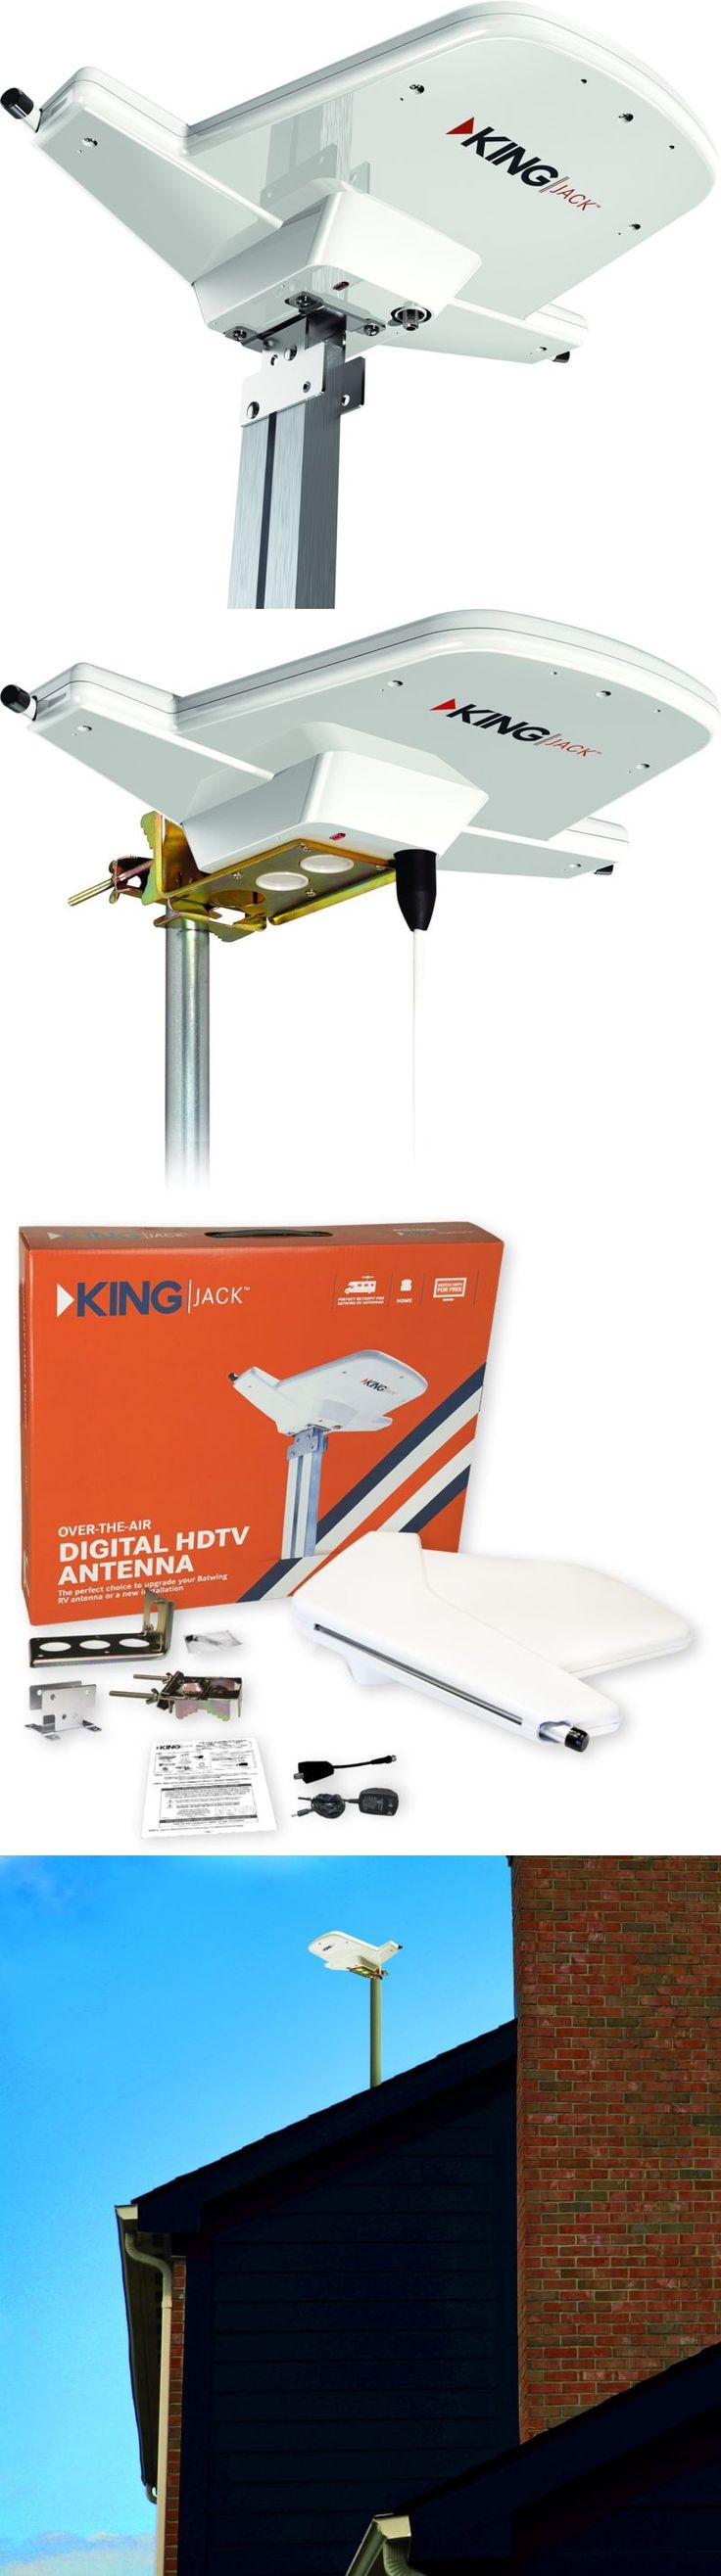 Antennas and Dishes: Jack Hdtv Rv Digital Tv Antenna Over Air Programming Vhf Uhf Signal Trailer New -> BUY IT NOW ONLY: $52.35 on eBay!